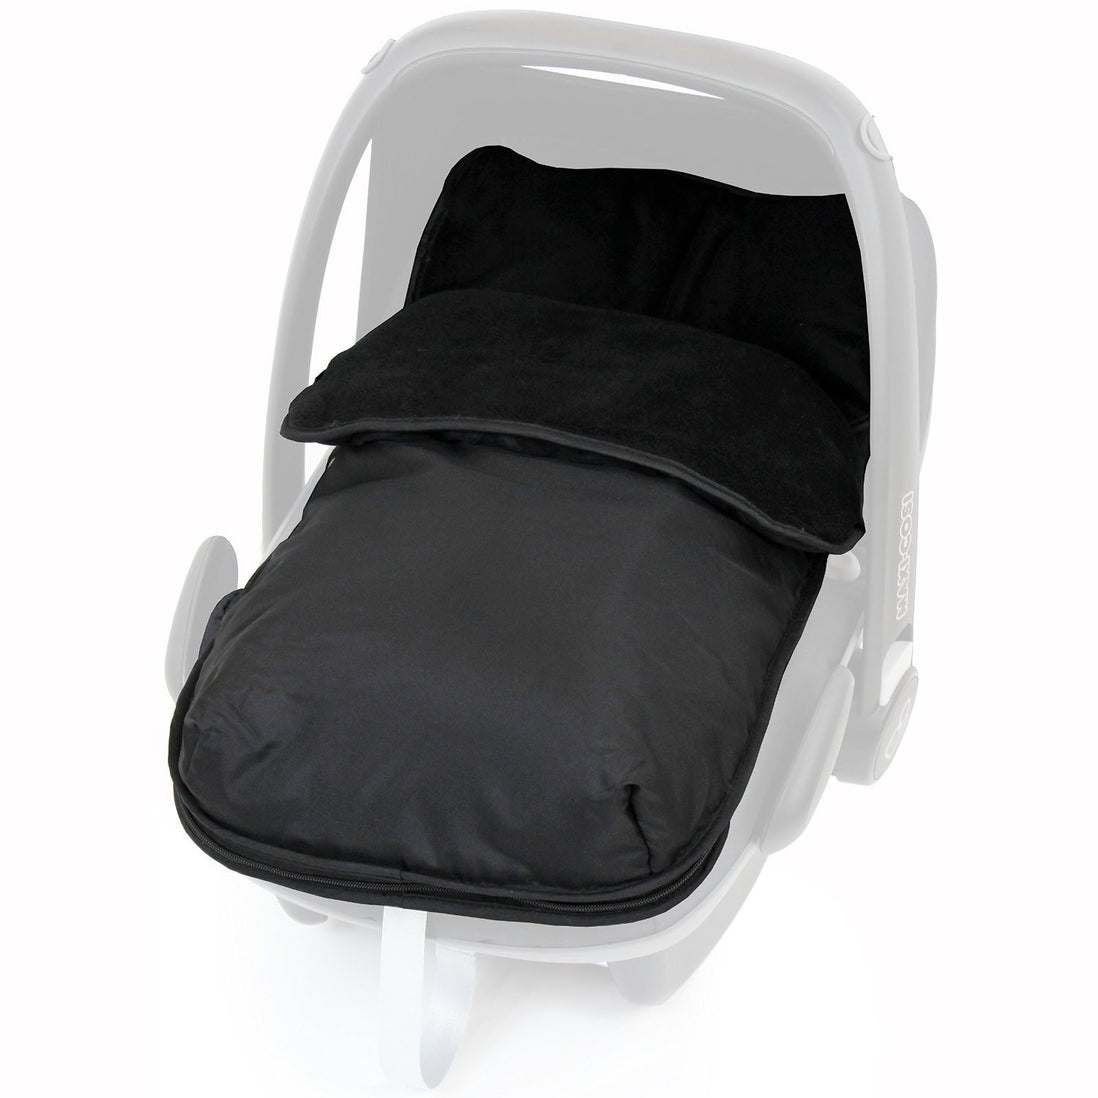 Universal Car Seat Footmuff//cosy Toes Joie Newborn Carseat Baby Boy Girl New